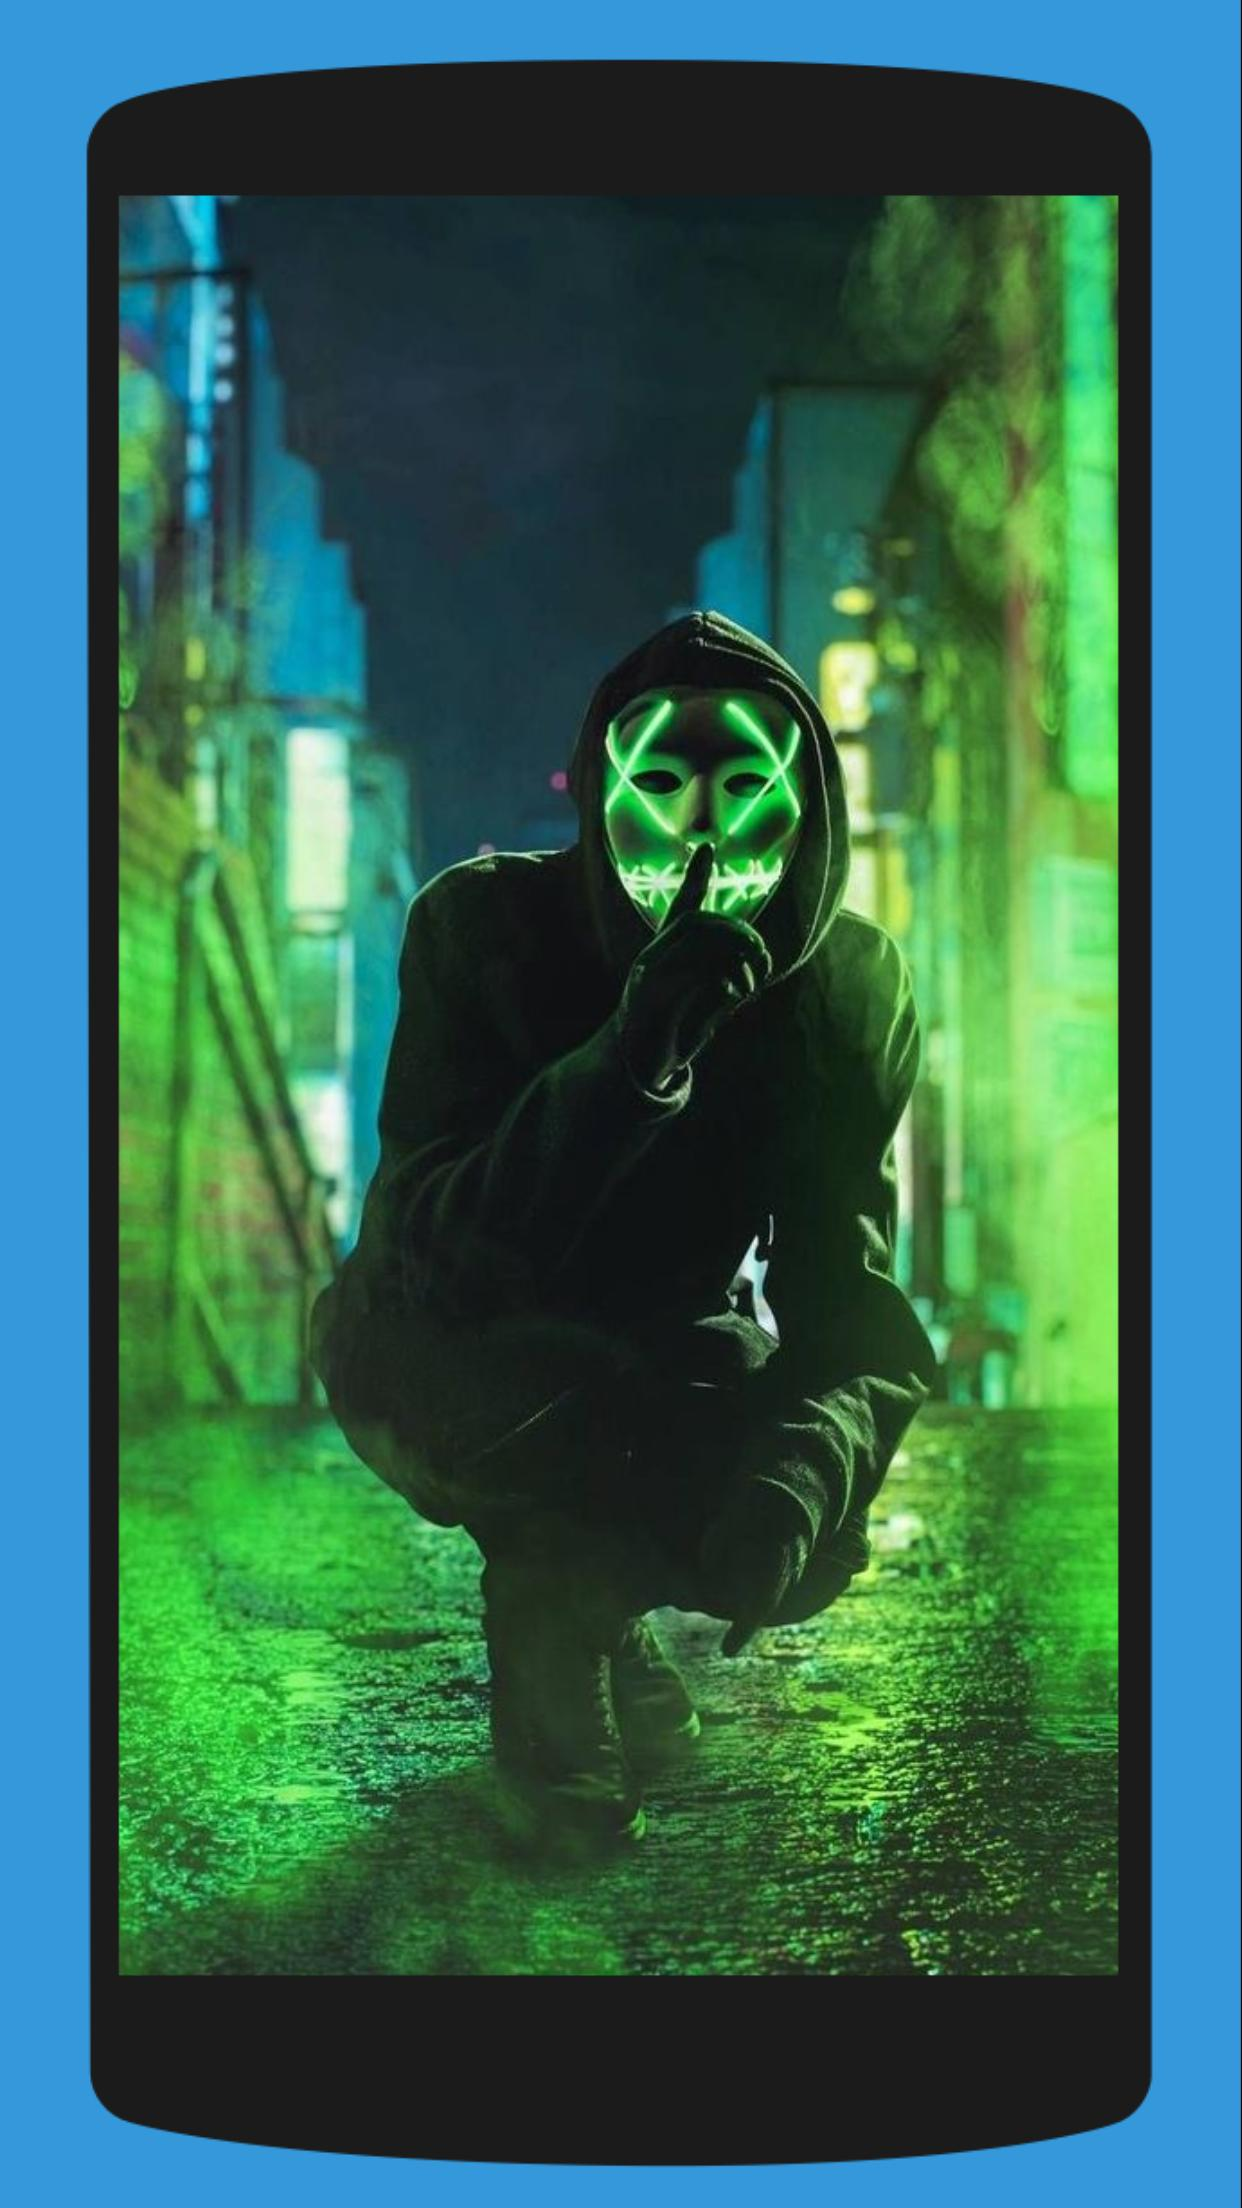 Hd Led Purge Mask Wallpaper For Android Apk Download